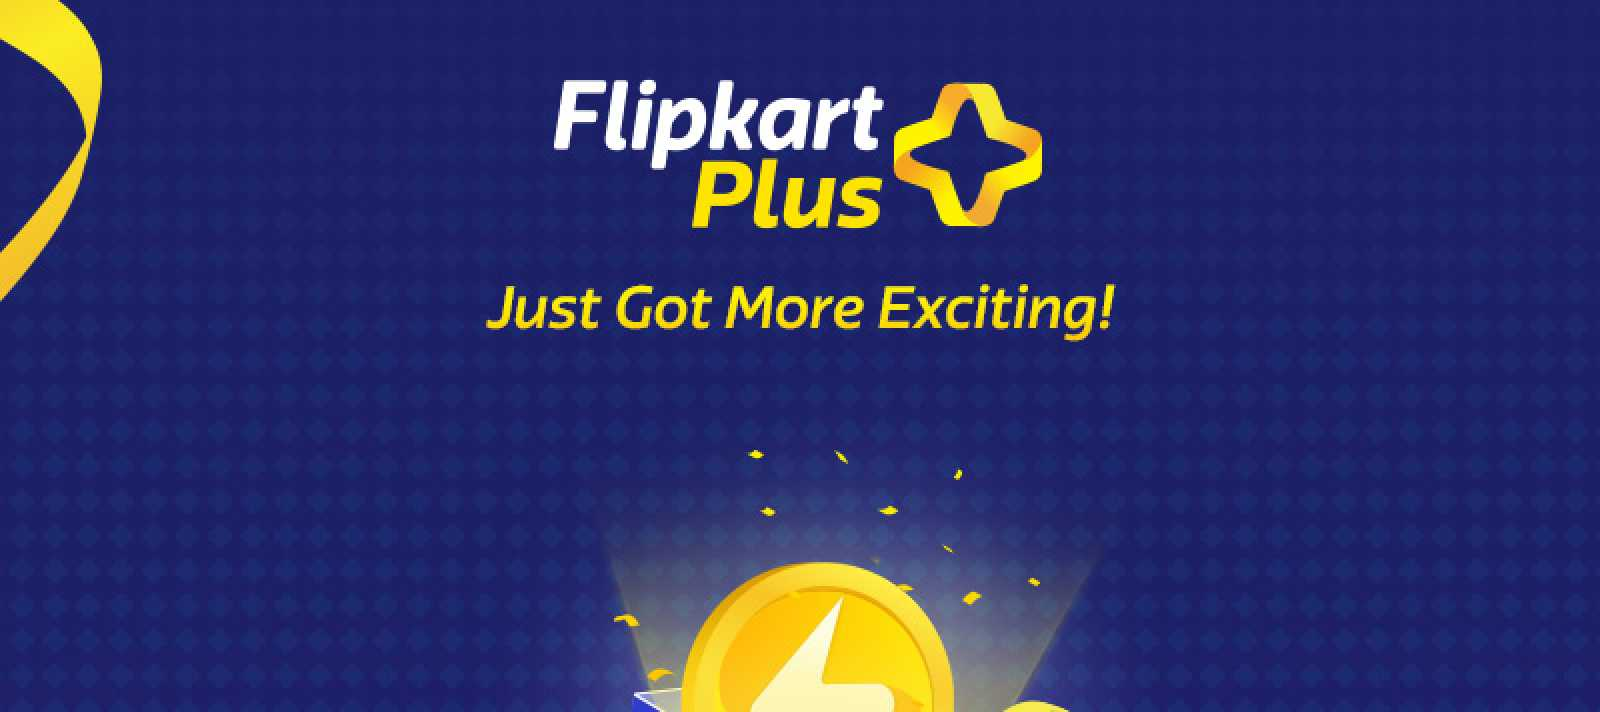 Flipkart Plus – The Ultimate Rewards Program for Flipkart